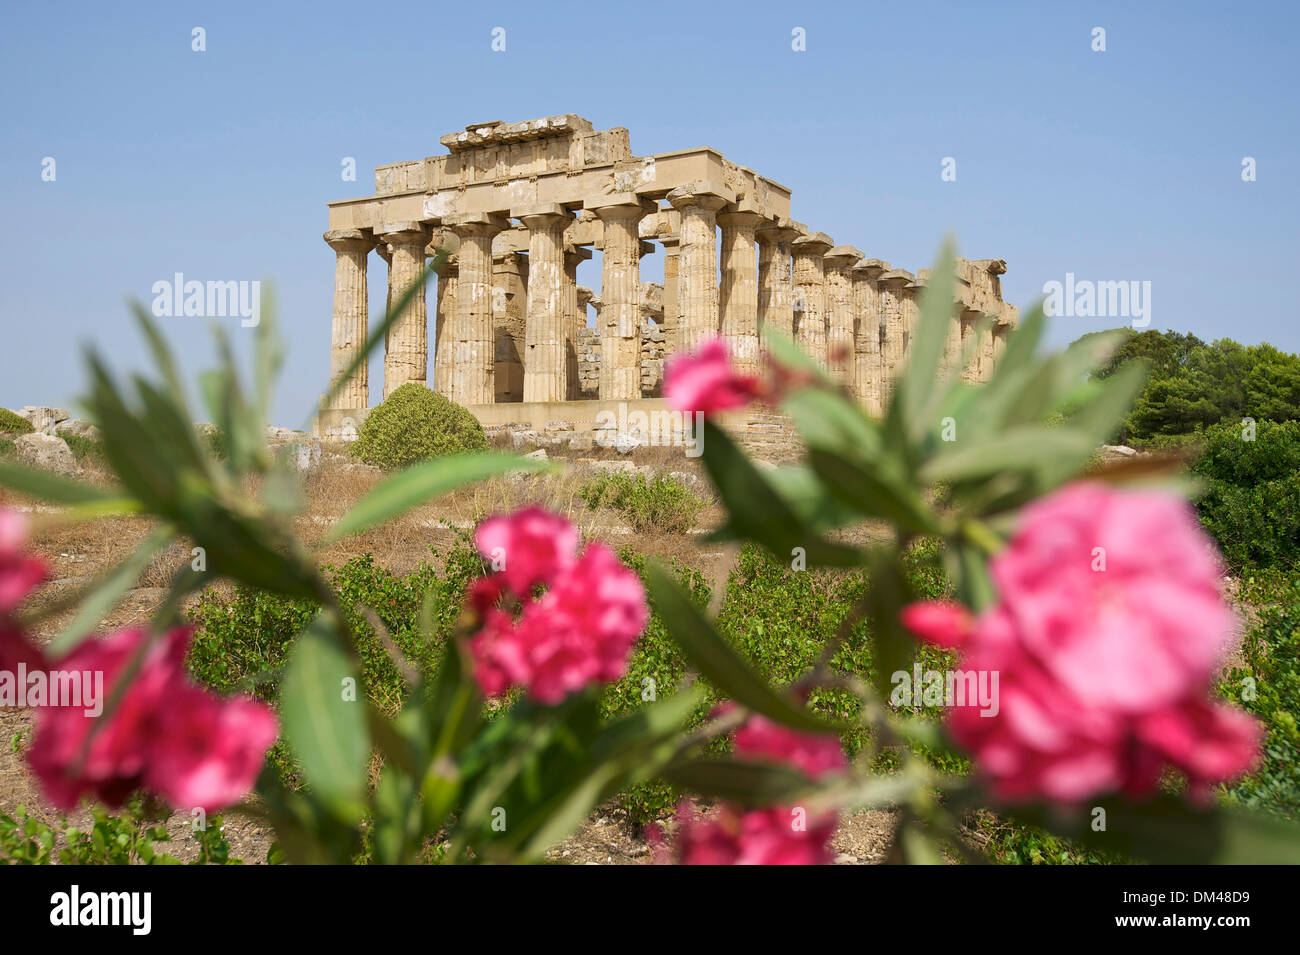 Italy Sicily South Italy Europe island temple of Hera Selinunt temple architecture building construction history historical - Stock Image